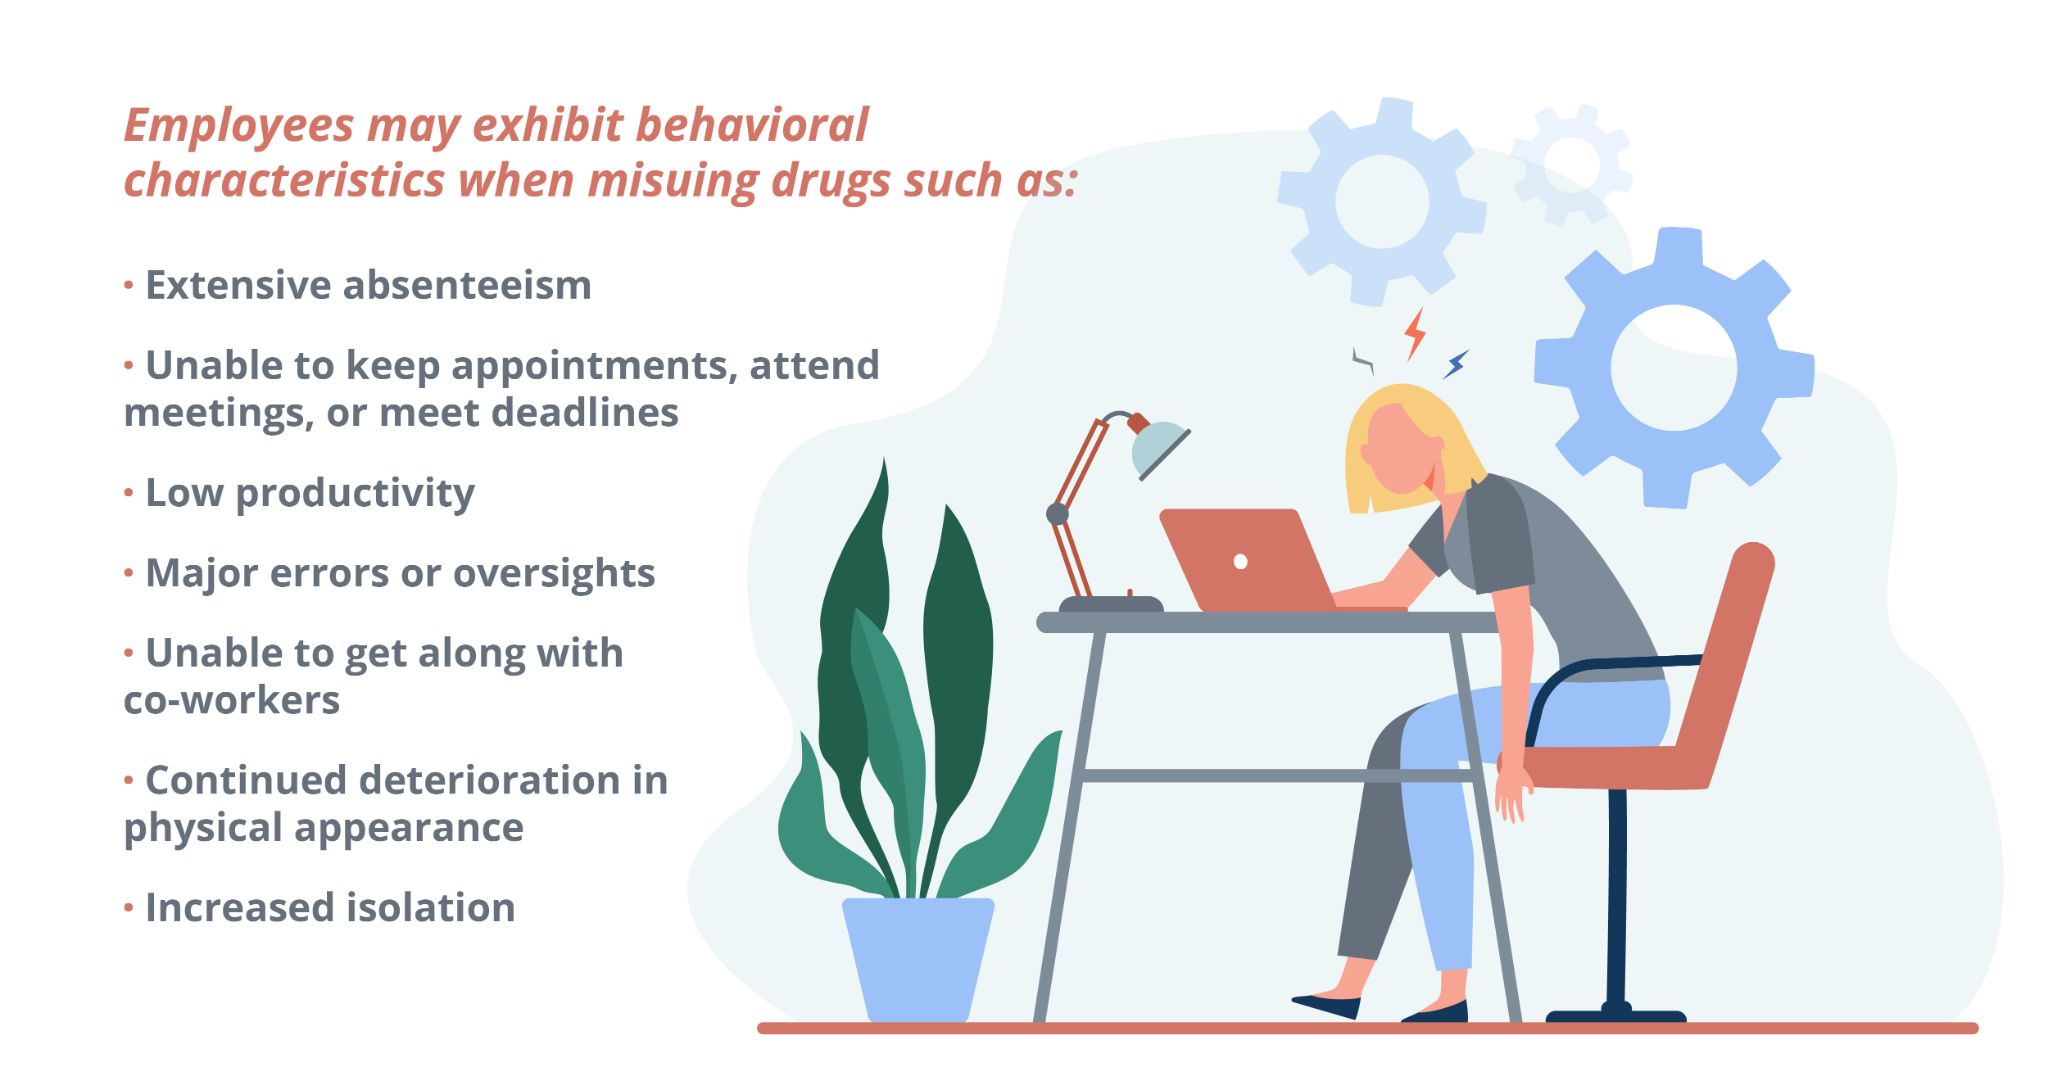 Employees may exhibit behavioral characteristics when misusing drugs such as: Extensive absenteeism, unable to keep appointments, attend meetings, or meet deadlines, Low productivity, Major errors or oversights, Unable to get along with coworkers, Continued deterioration in physical appearance, increased isolation.